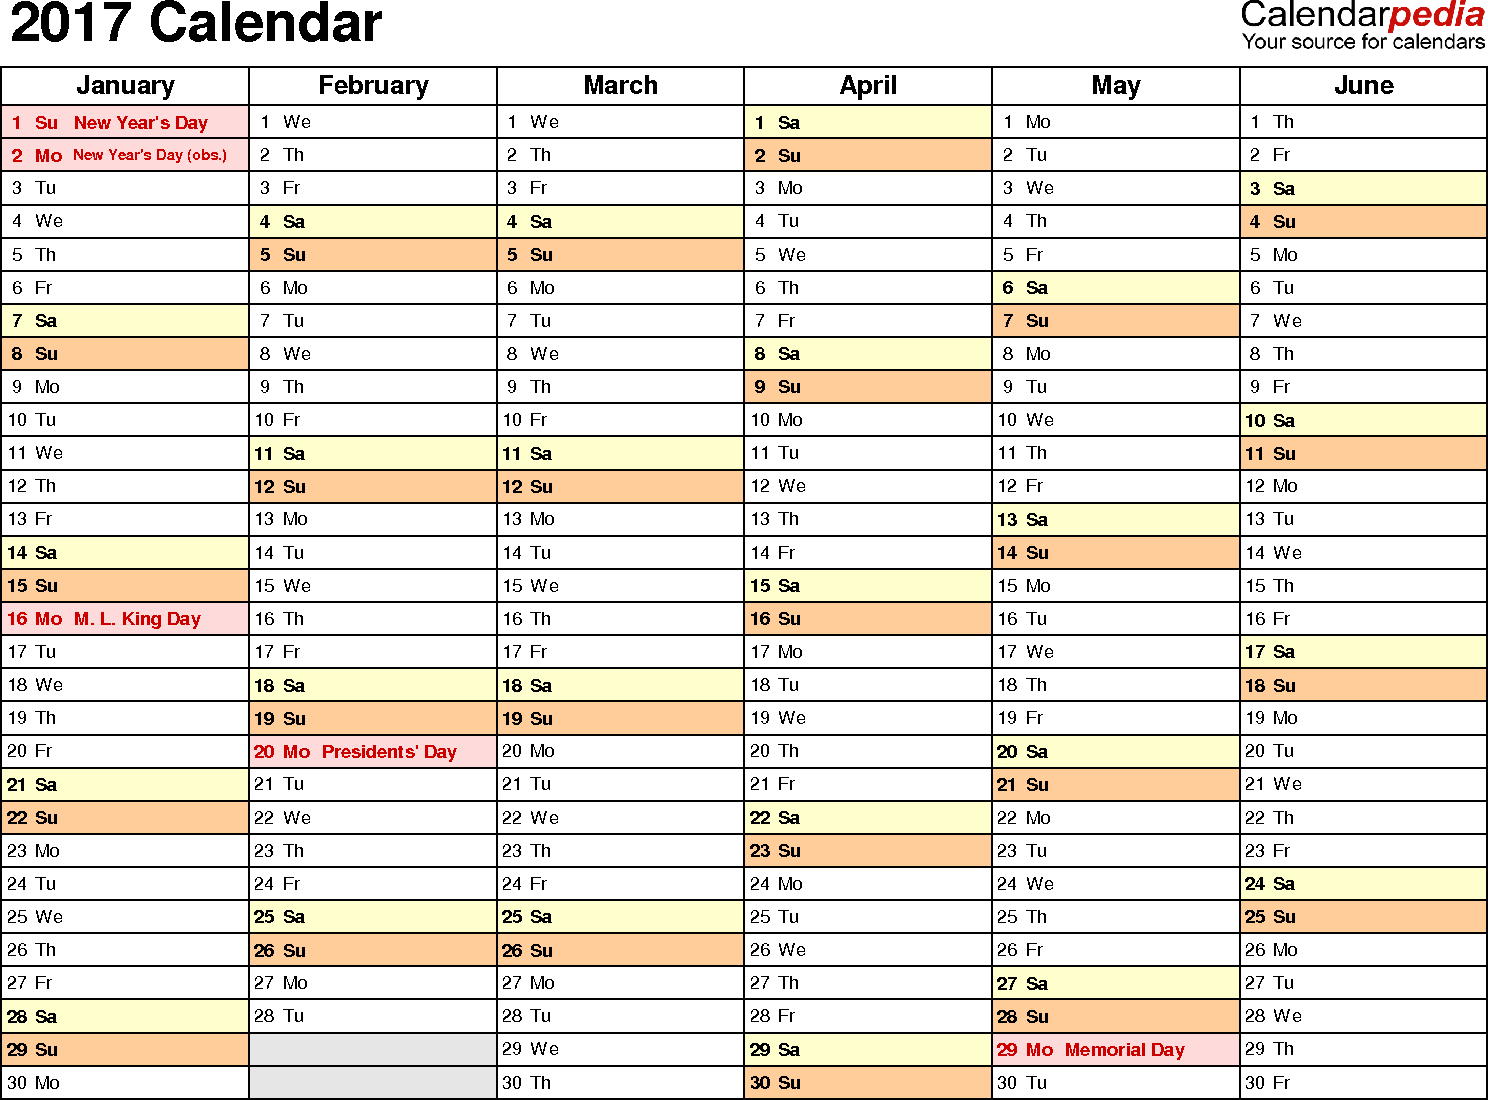 Ediblewildsus  Mesmerizing  Calendar  Download  Free Printable Excel Templates Xls With Engaging Template   Calendar For Excel Months Horizontally  Pages Landscape Orientation With Divine New Worksheet Excel Also Meeting Minutes Excel Template In Addition Excel Keyboard Shortcuts For Mac And No Data Analysis In Excel As Well As Sum Multiple Columns In Excel Additionally Encrypted Excel File From Calendarpediacom With Ediblewildsus  Engaging  Calendar  Download  Free Printable Excel Templates Xls With Divine Template   Calendar For Excel Months Horizontally  Pages Landscape Orientation And Mesmerizing New Worksheet Excel Also Meeting Minutes Excel Template In Addition Excel Keyboard Shortcuts For Mac From Calendarpediacom